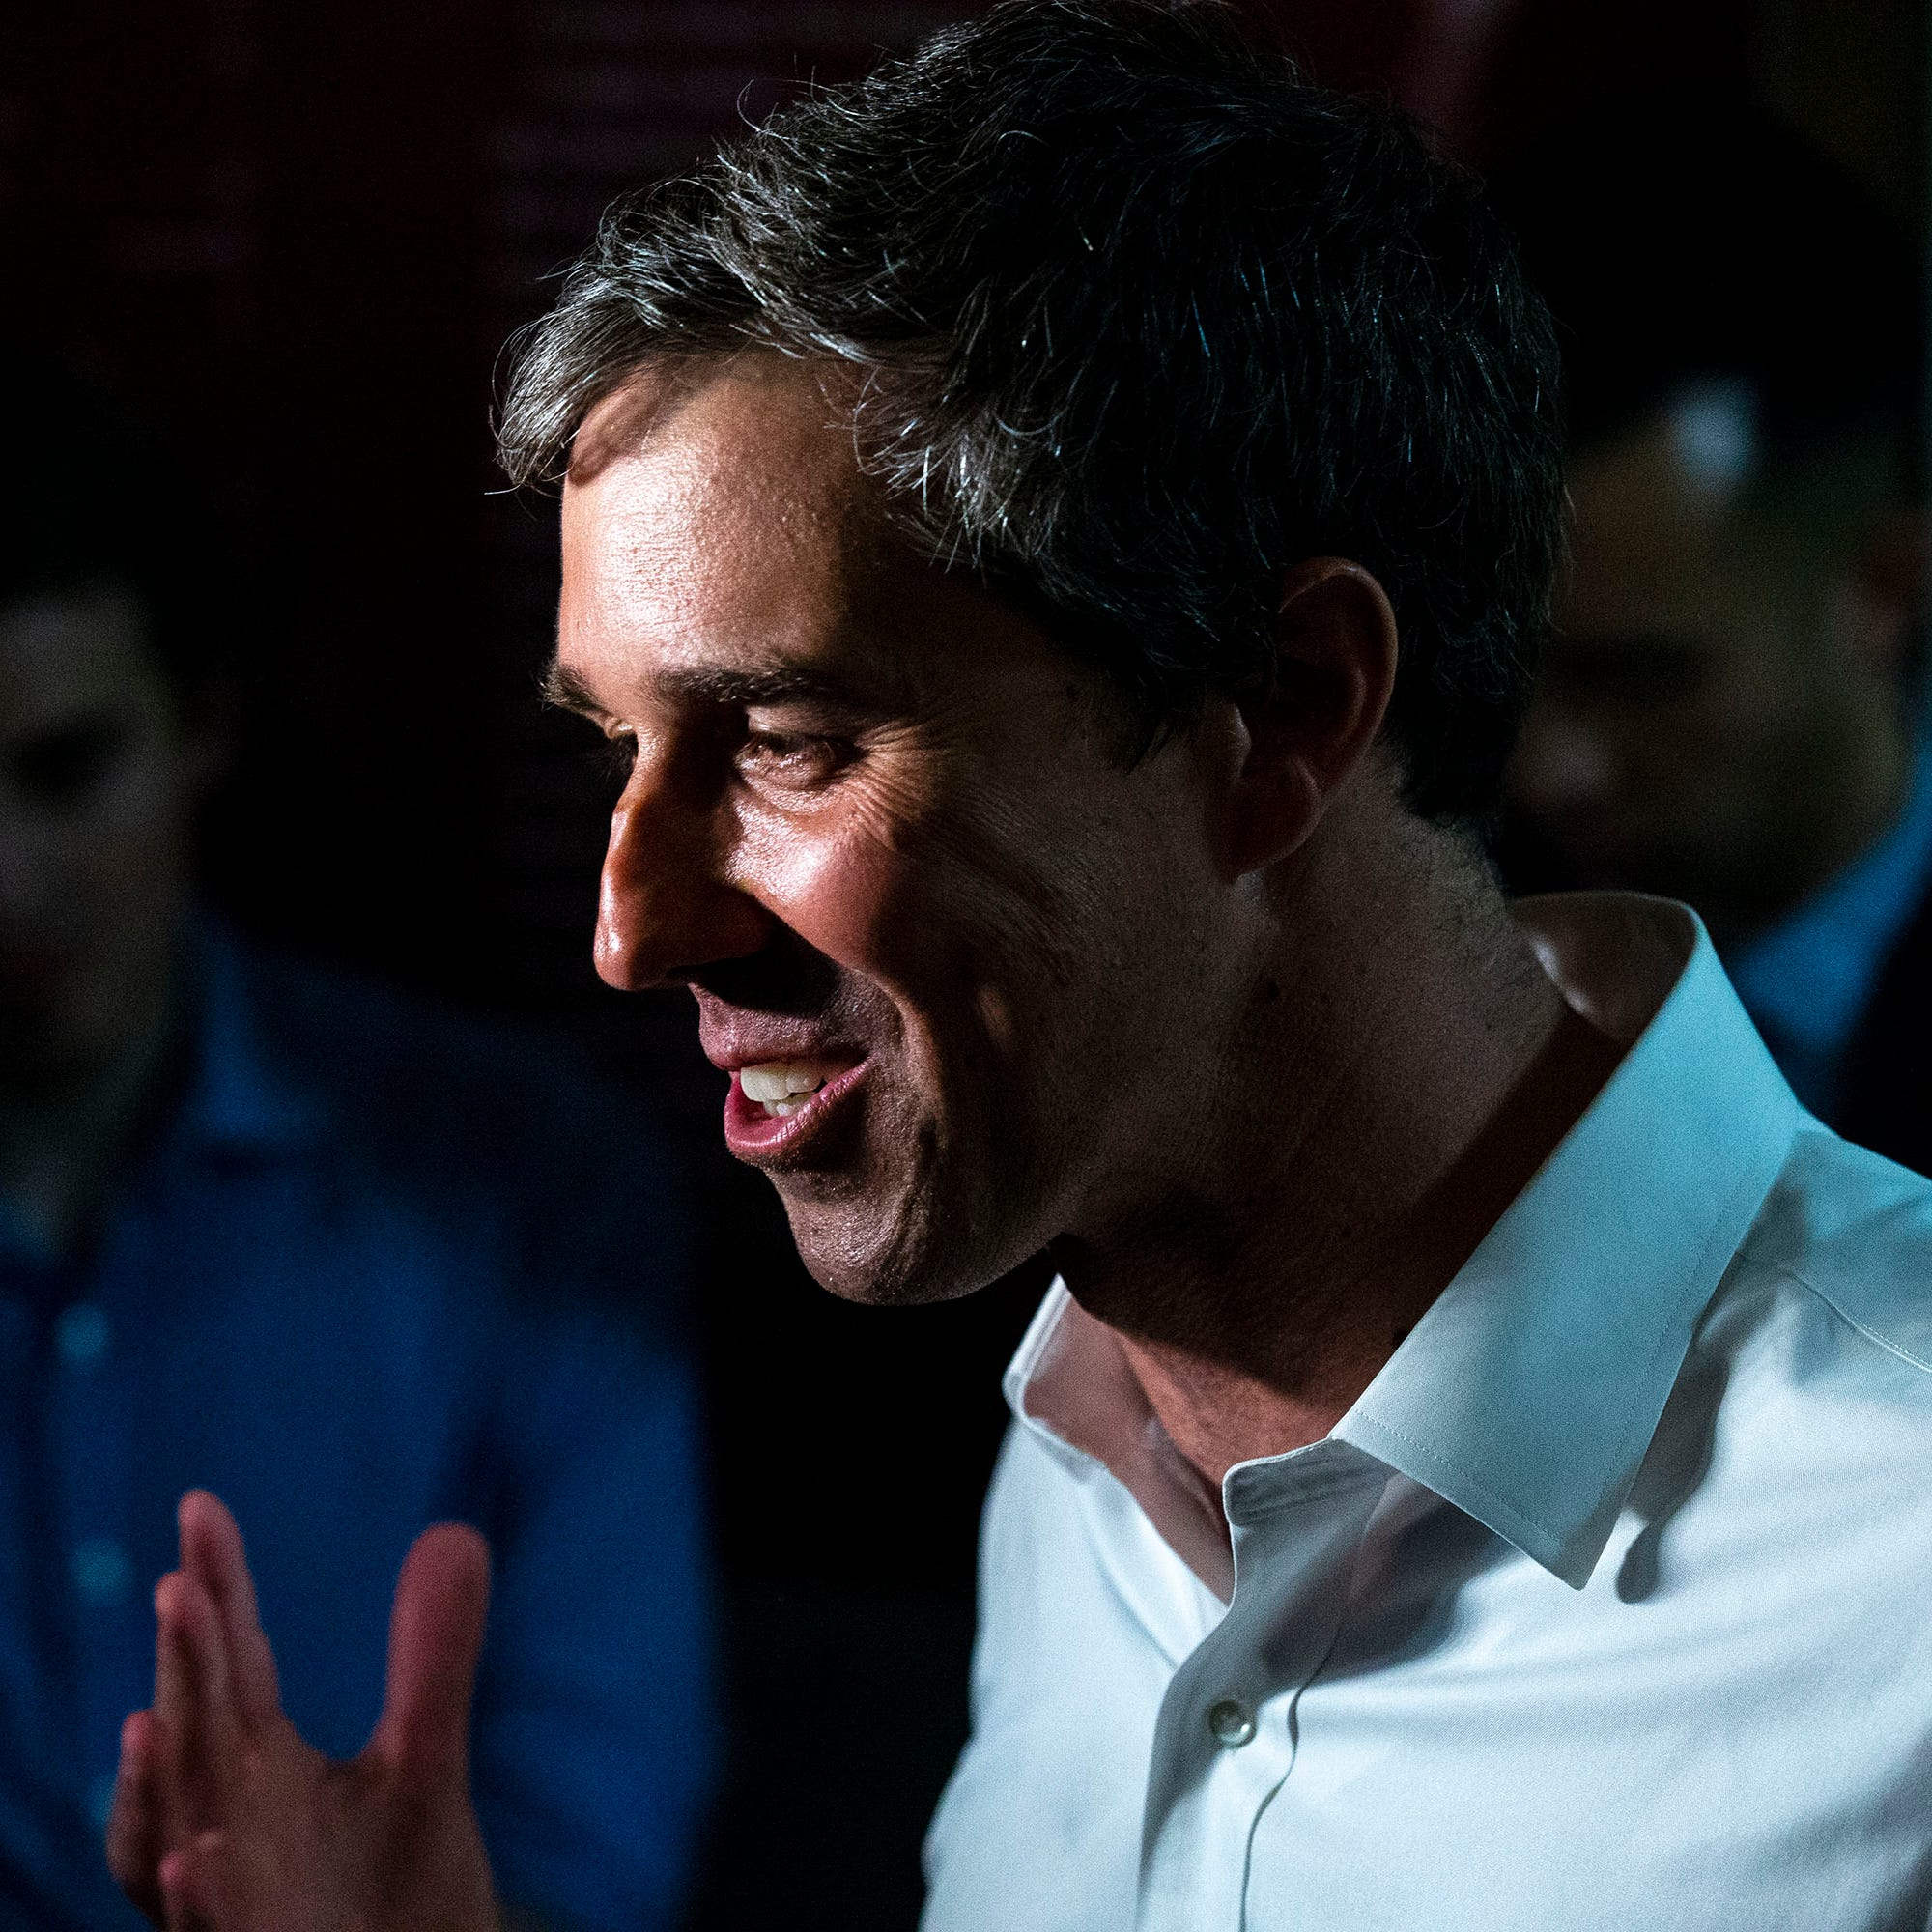 Beto O'Rourke visits Iowa town impacted by flooding, connects disaster to climate change